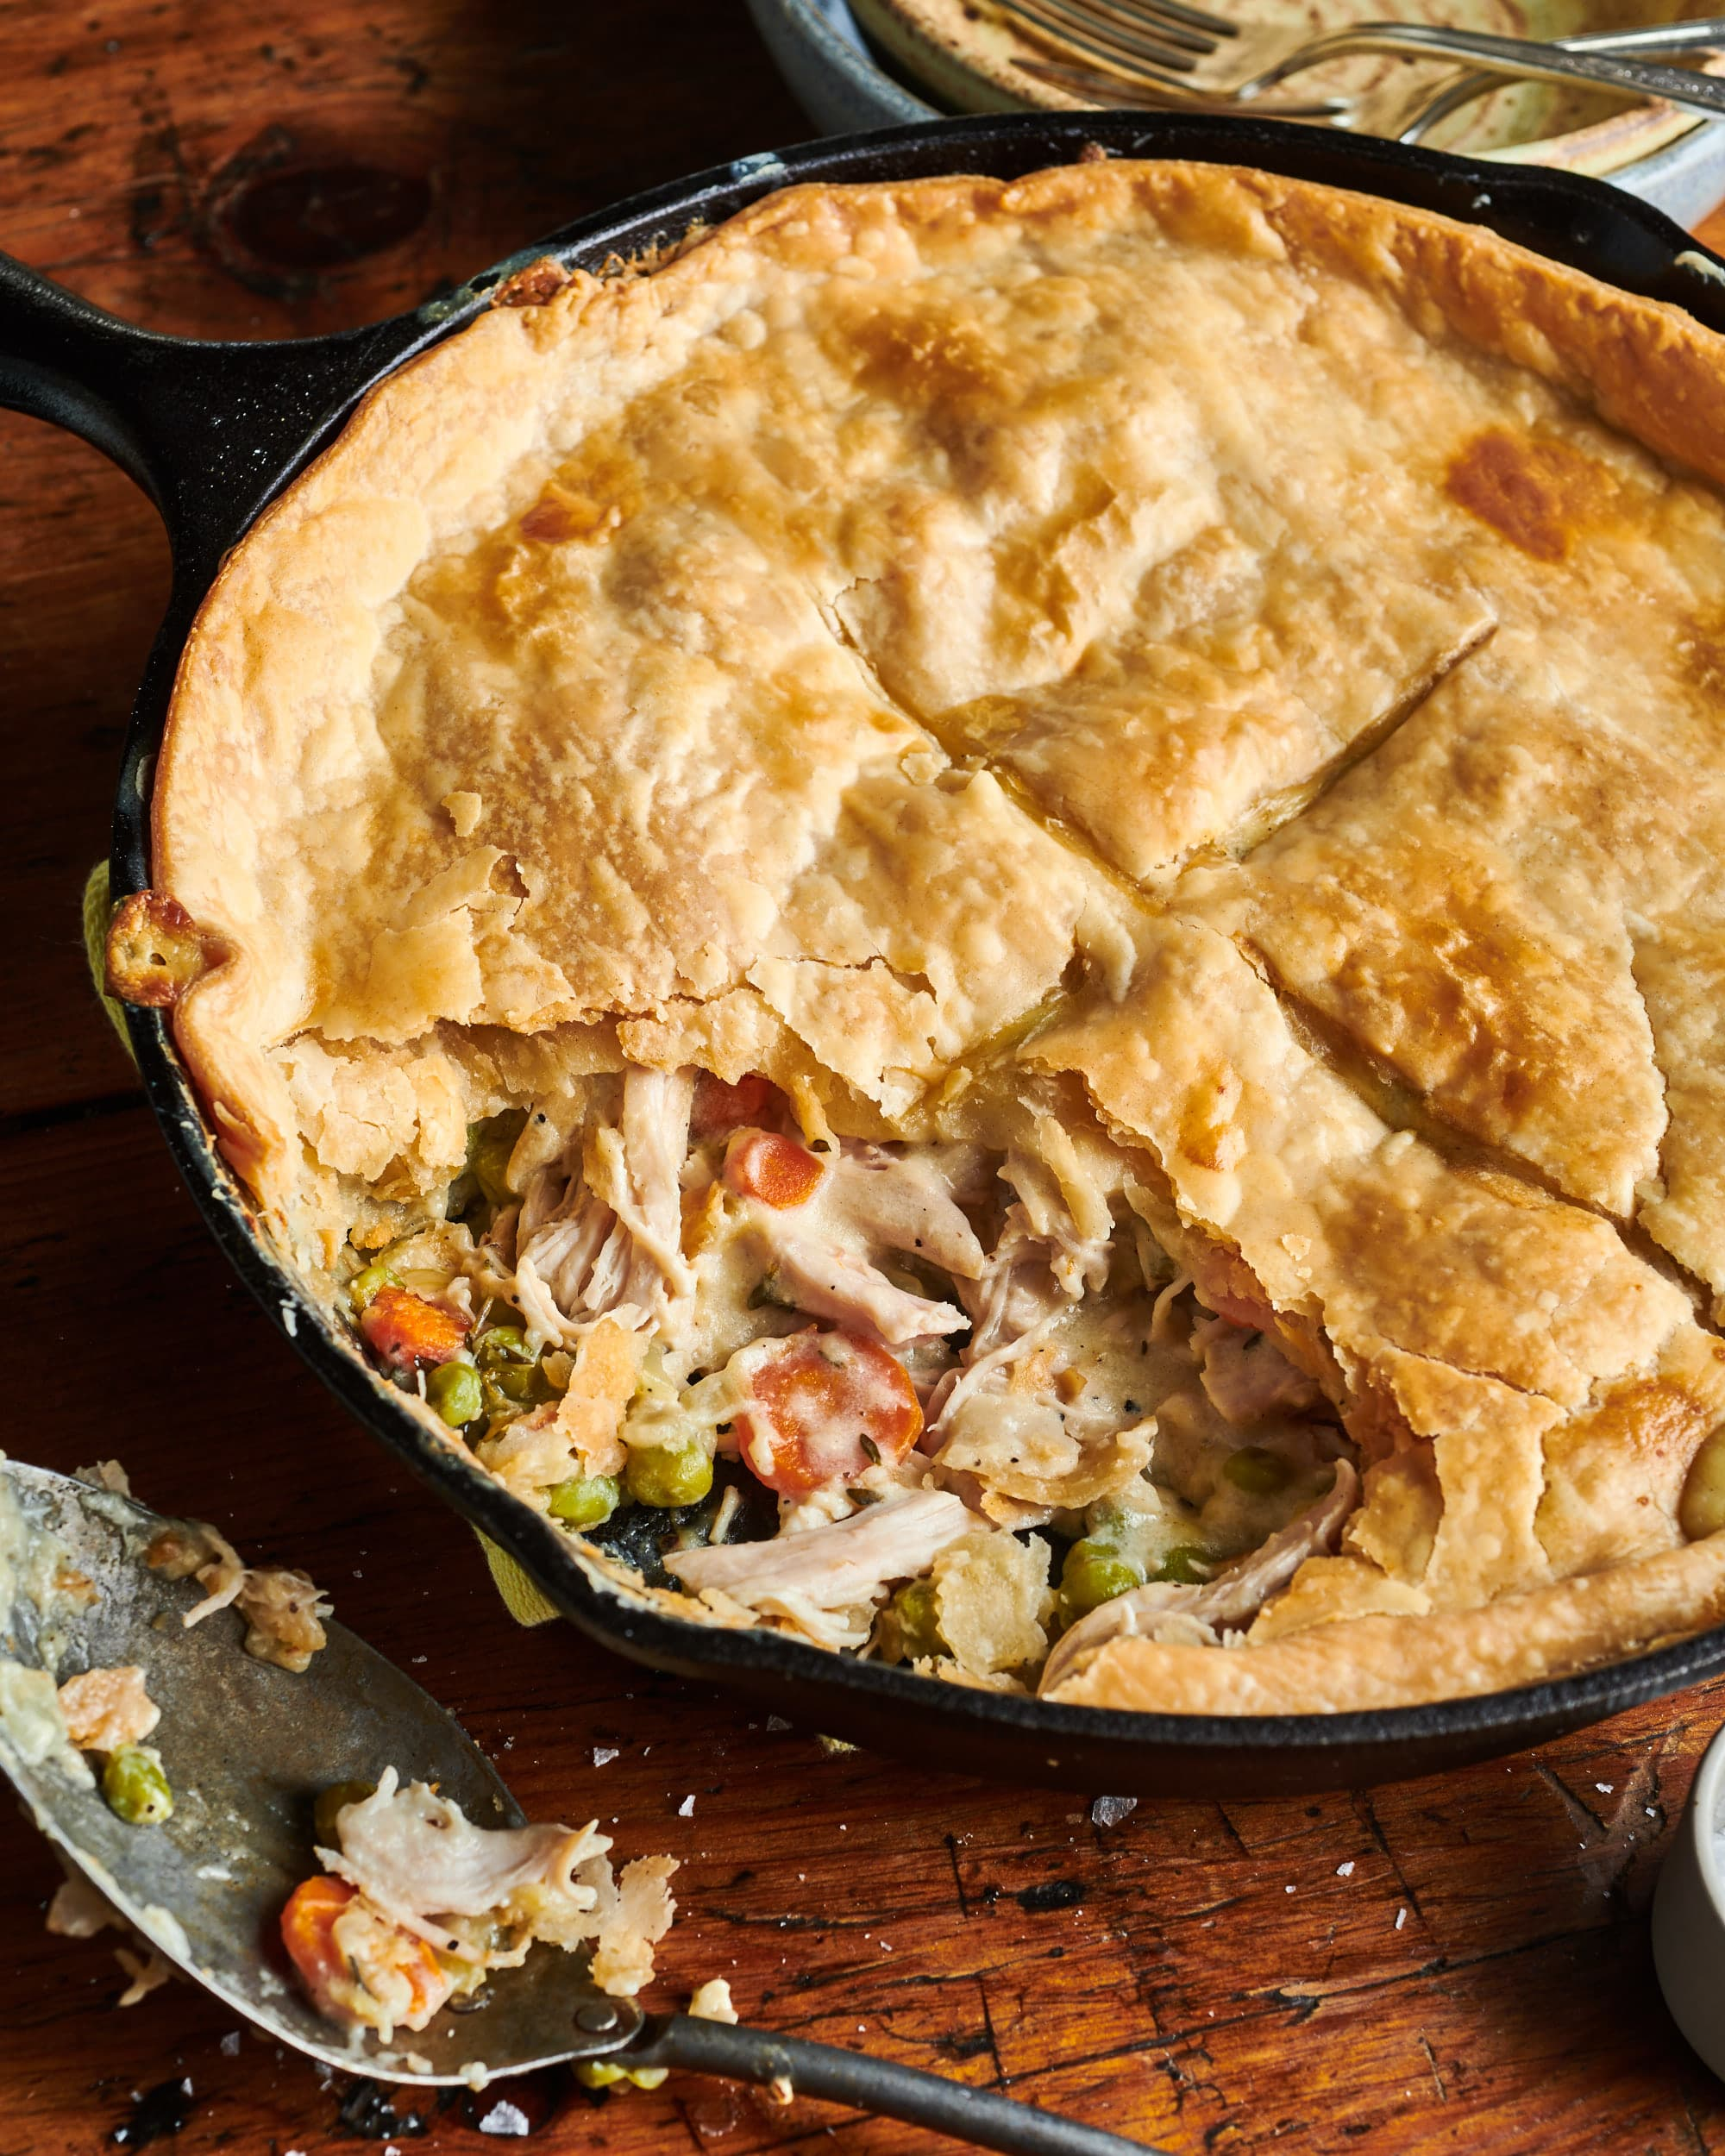 Turkey pot pie in skillet with portion sliced out.